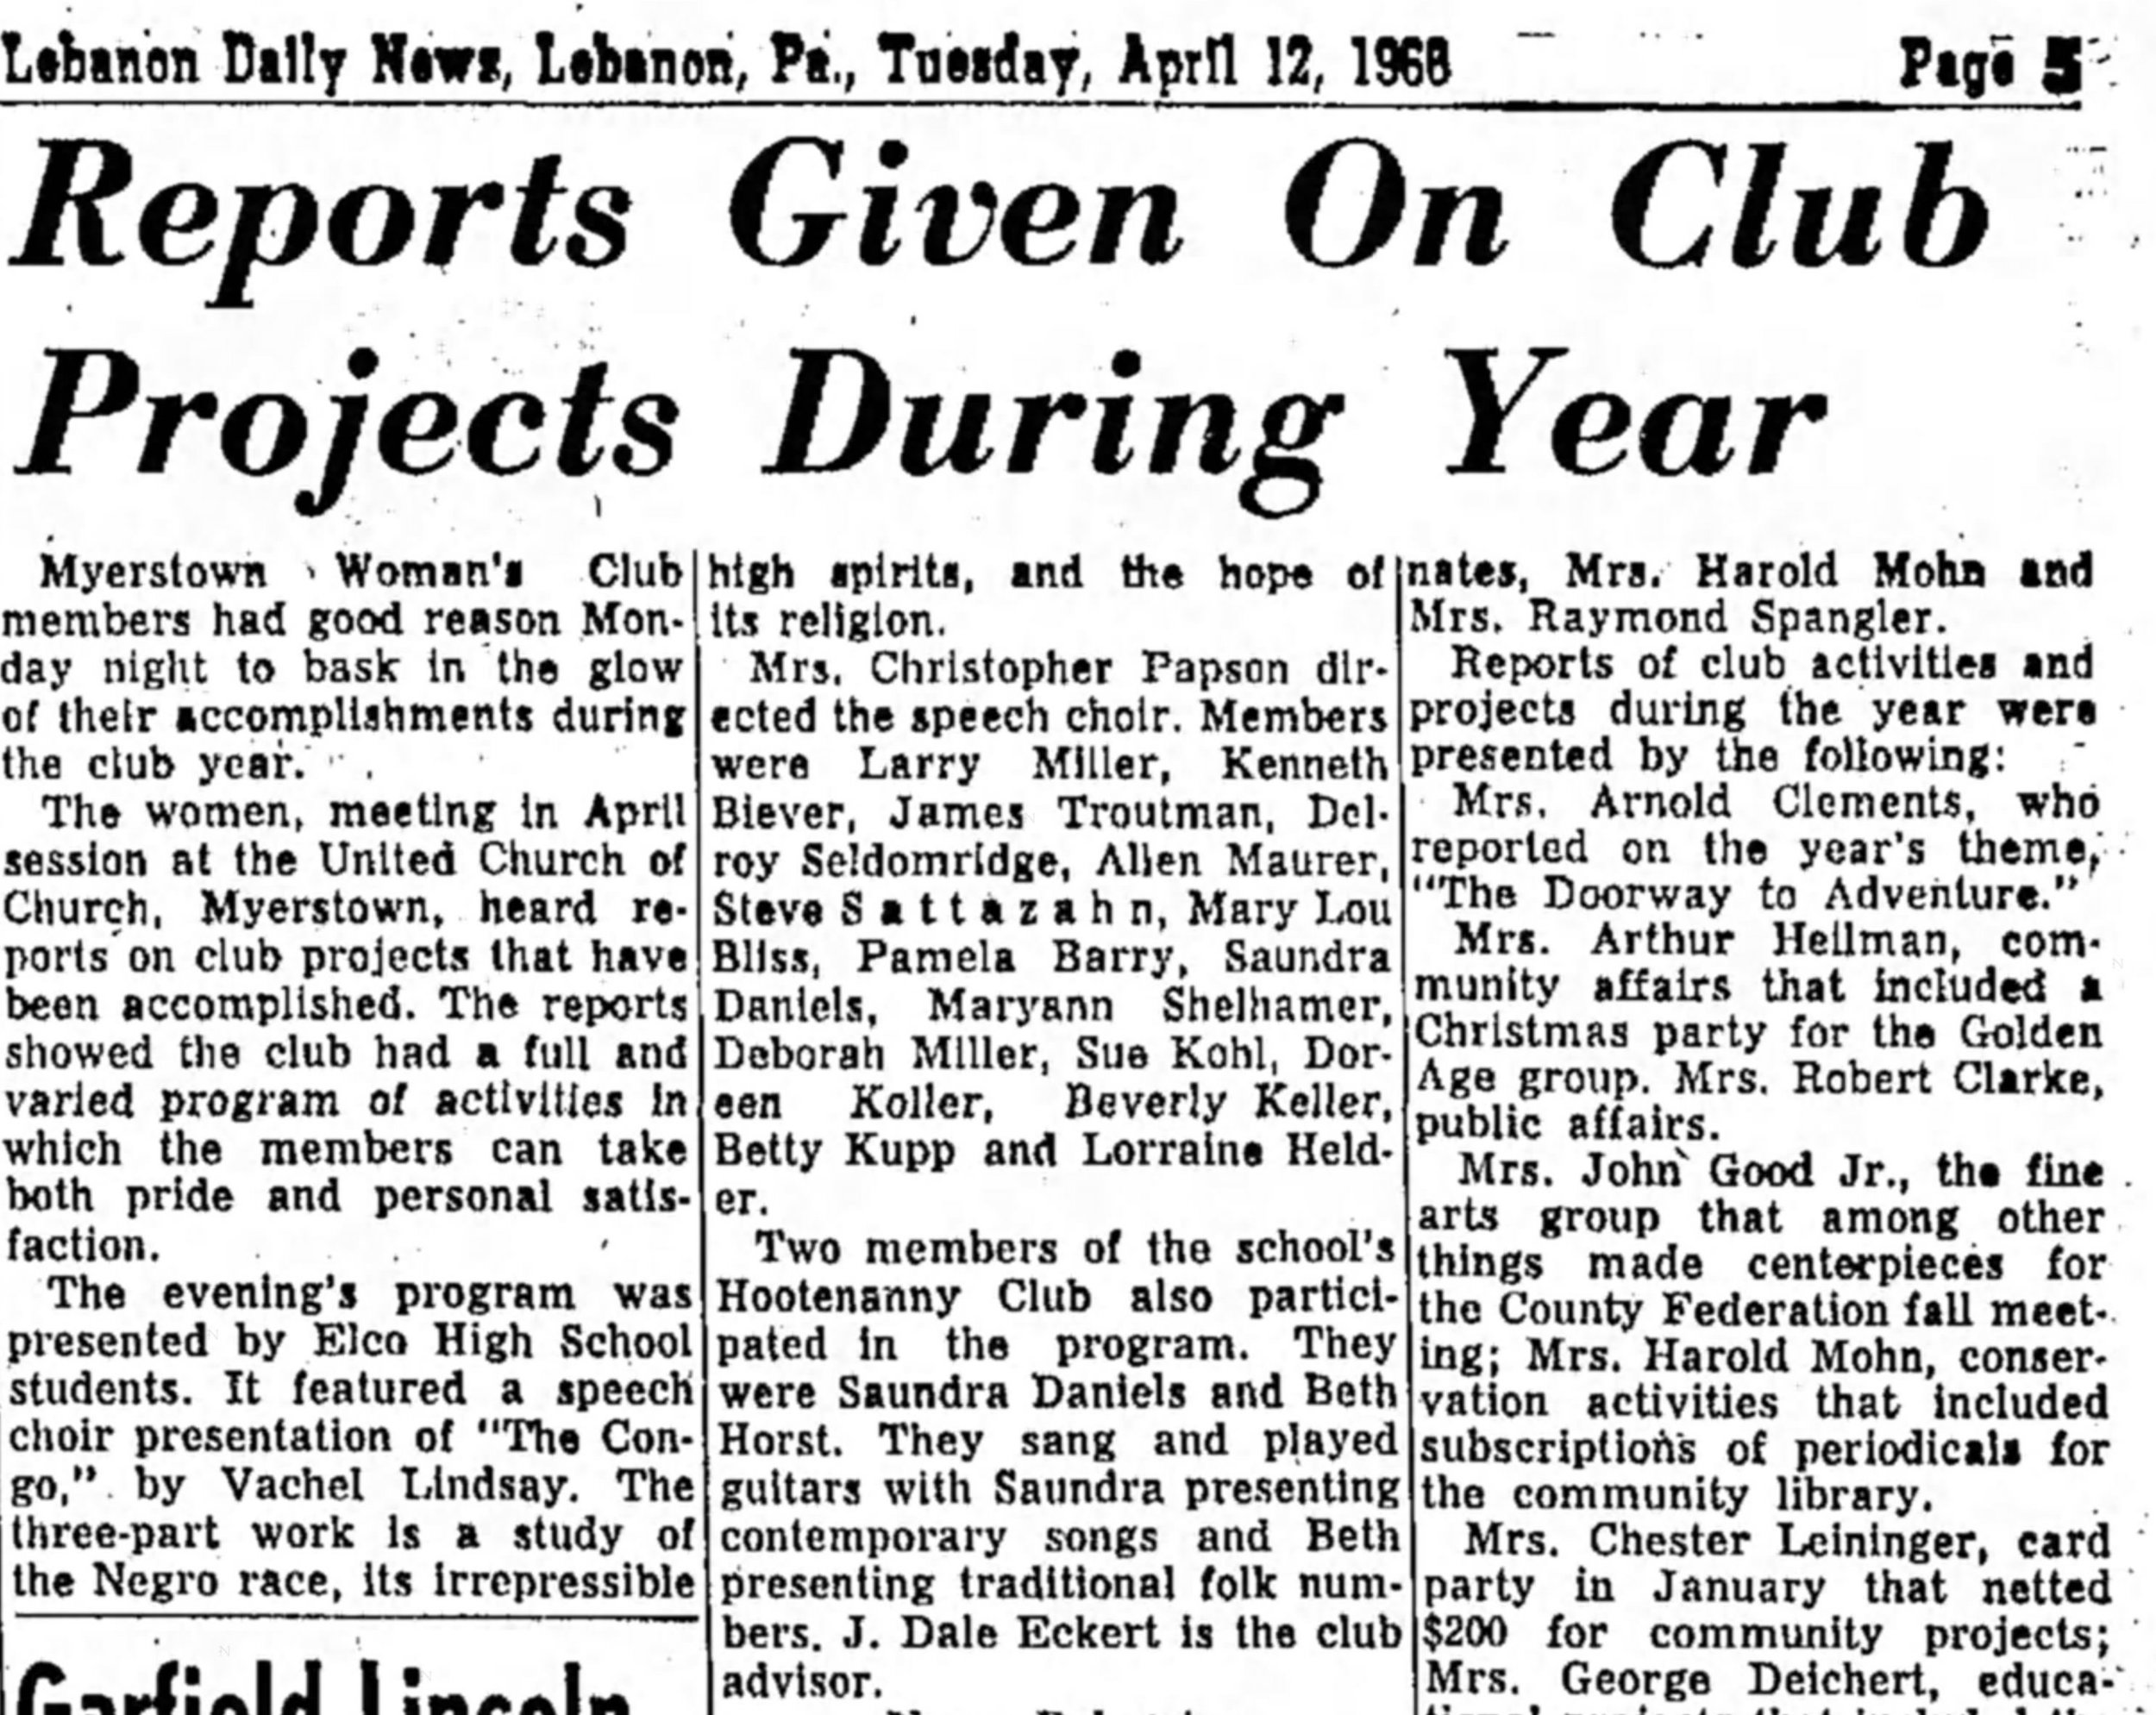 From the Lebanon Daily News April 12, 1966